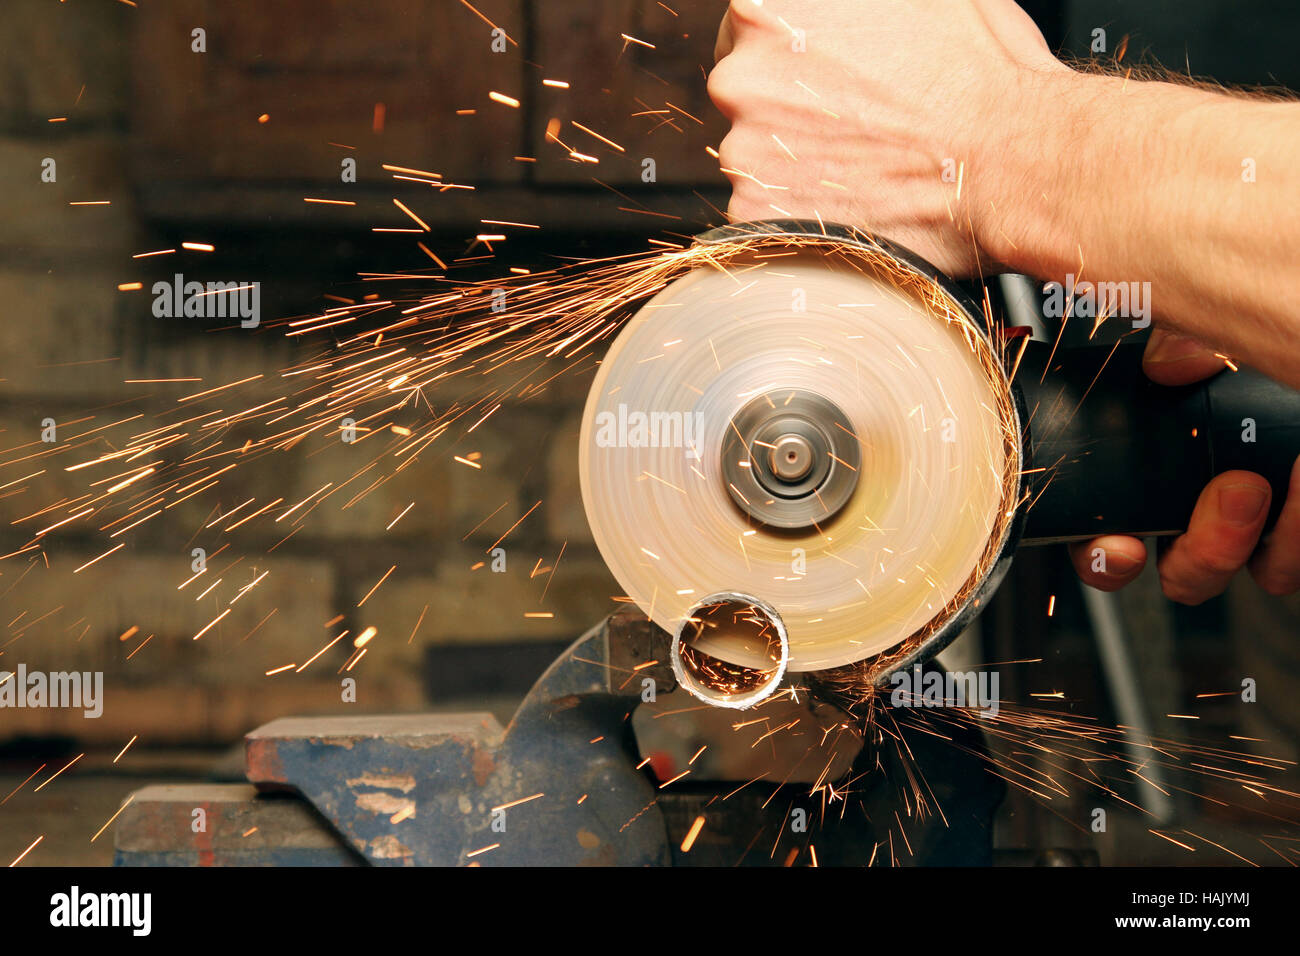 cutting metal with angle grinder, sparks from the disk - Stock Image